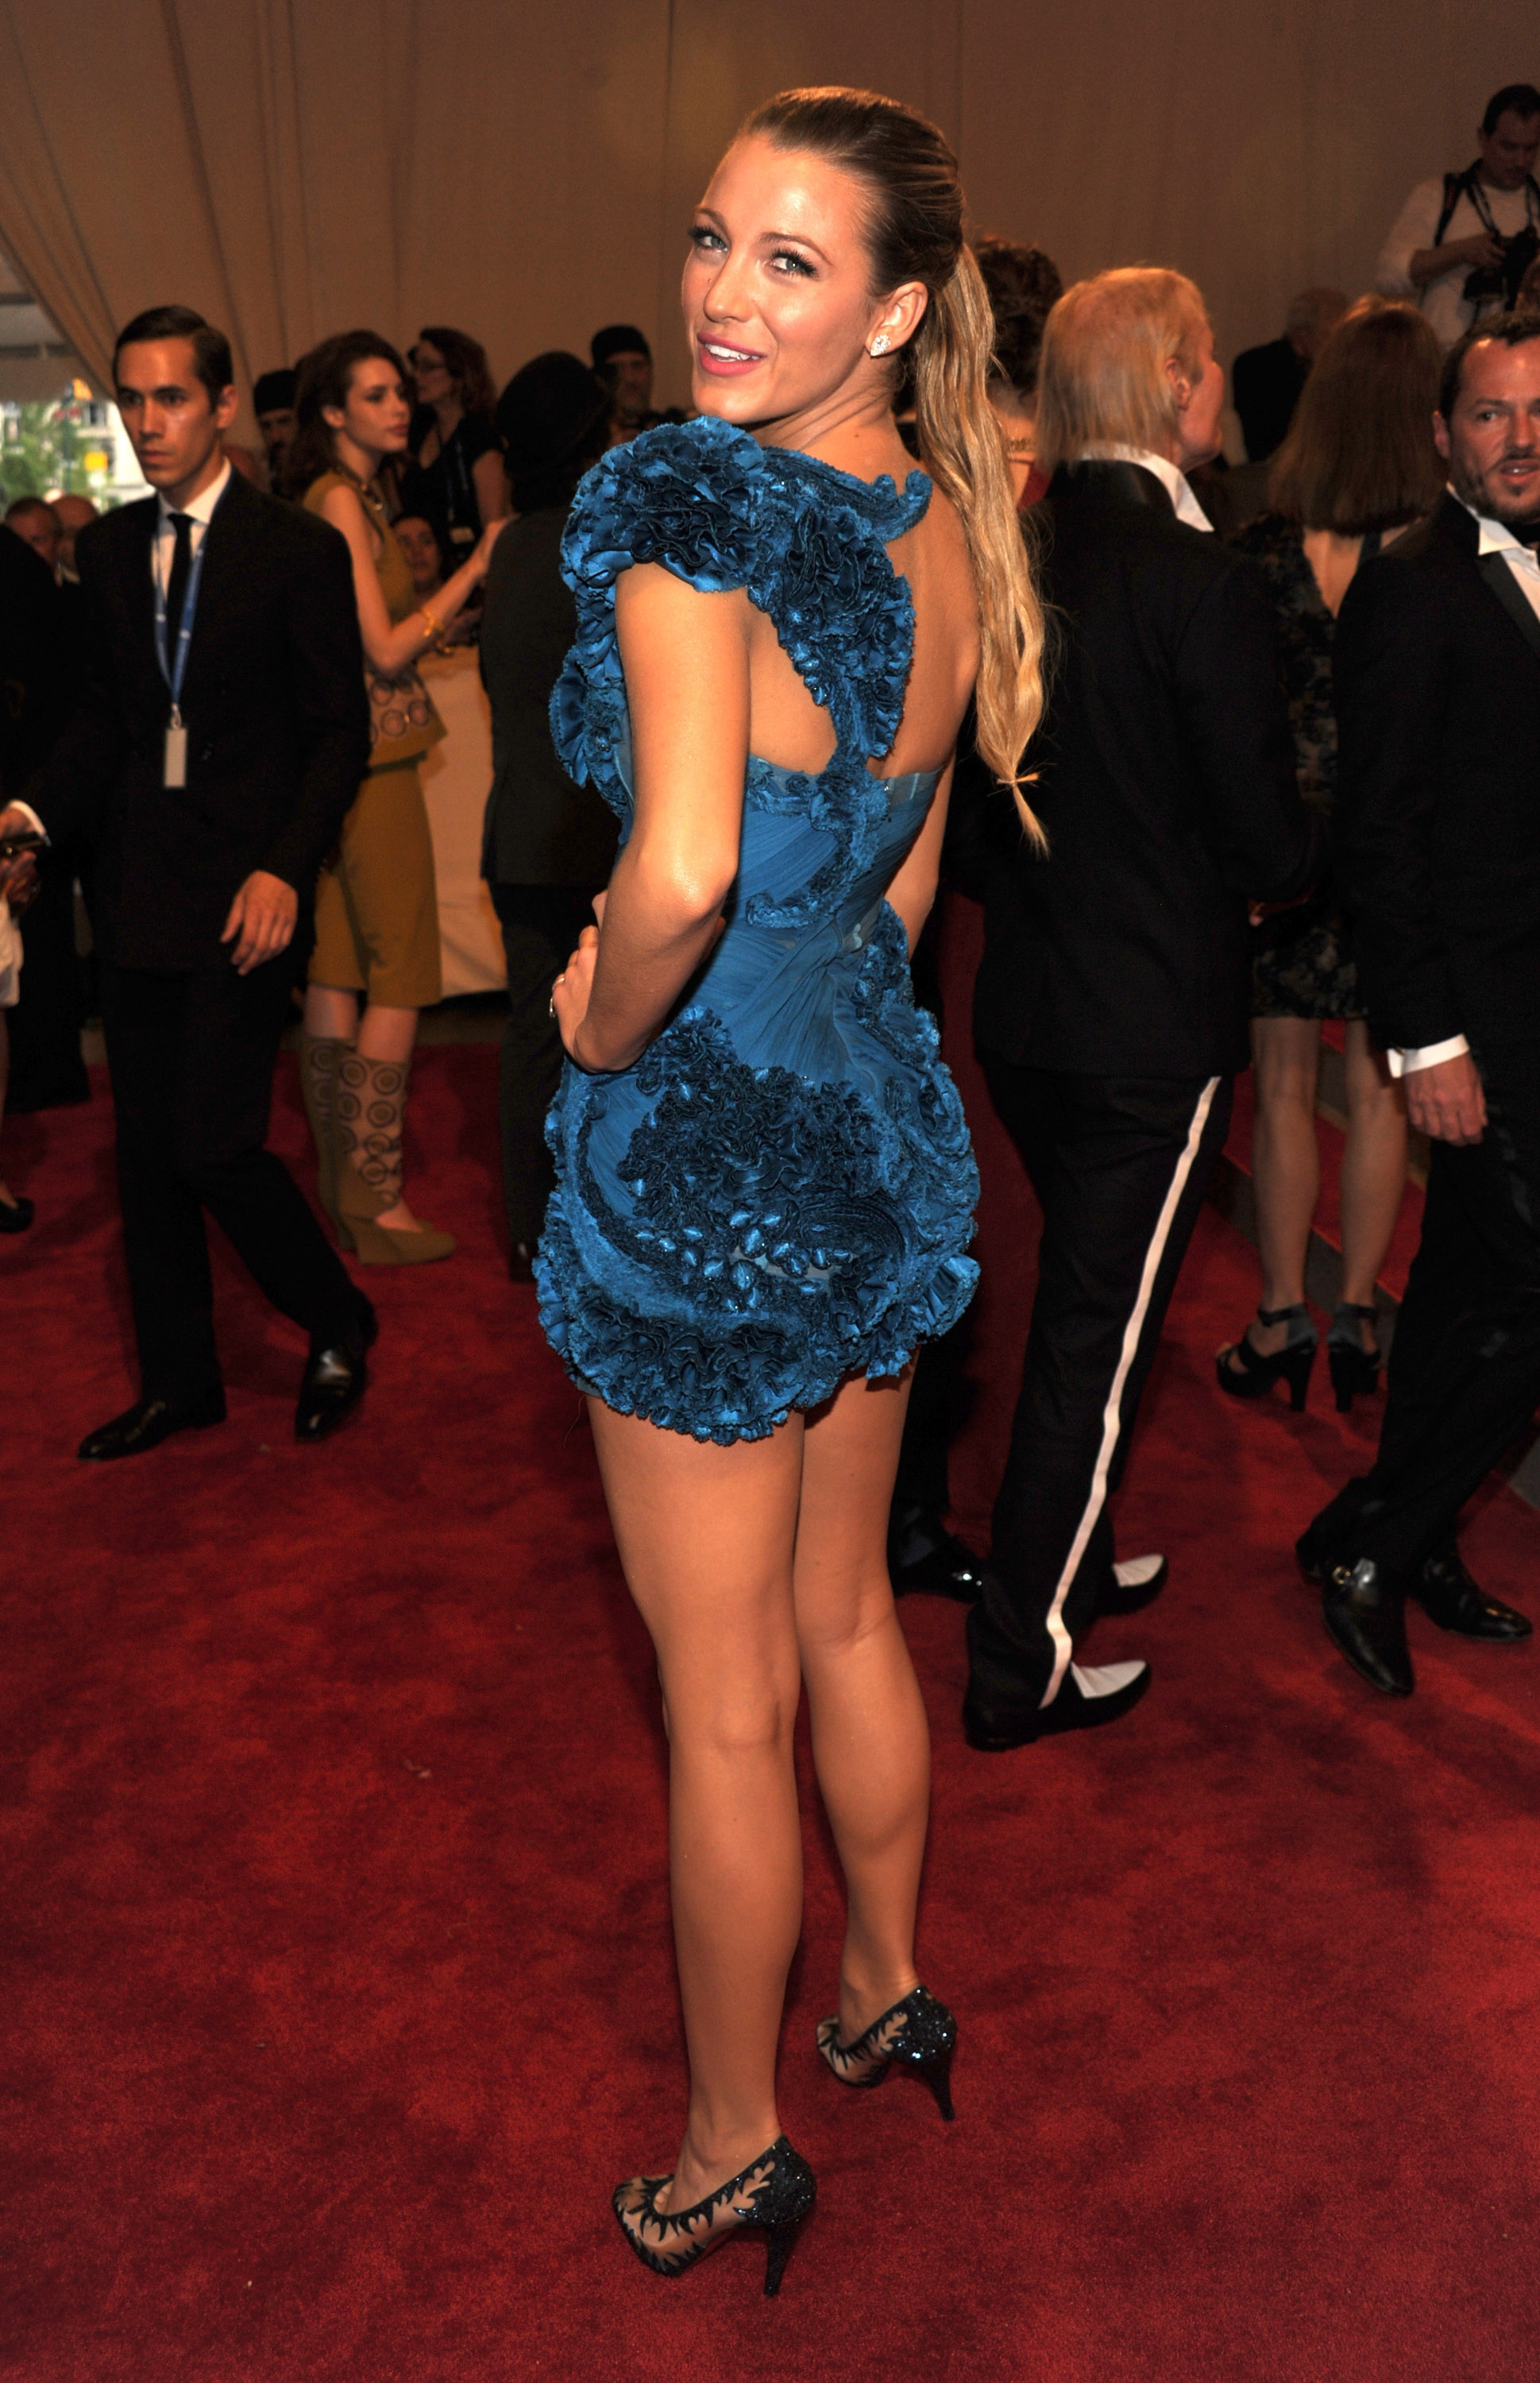 Blake Lively 2010 Costume Institute Gala In Nyc 10 Gotceleb